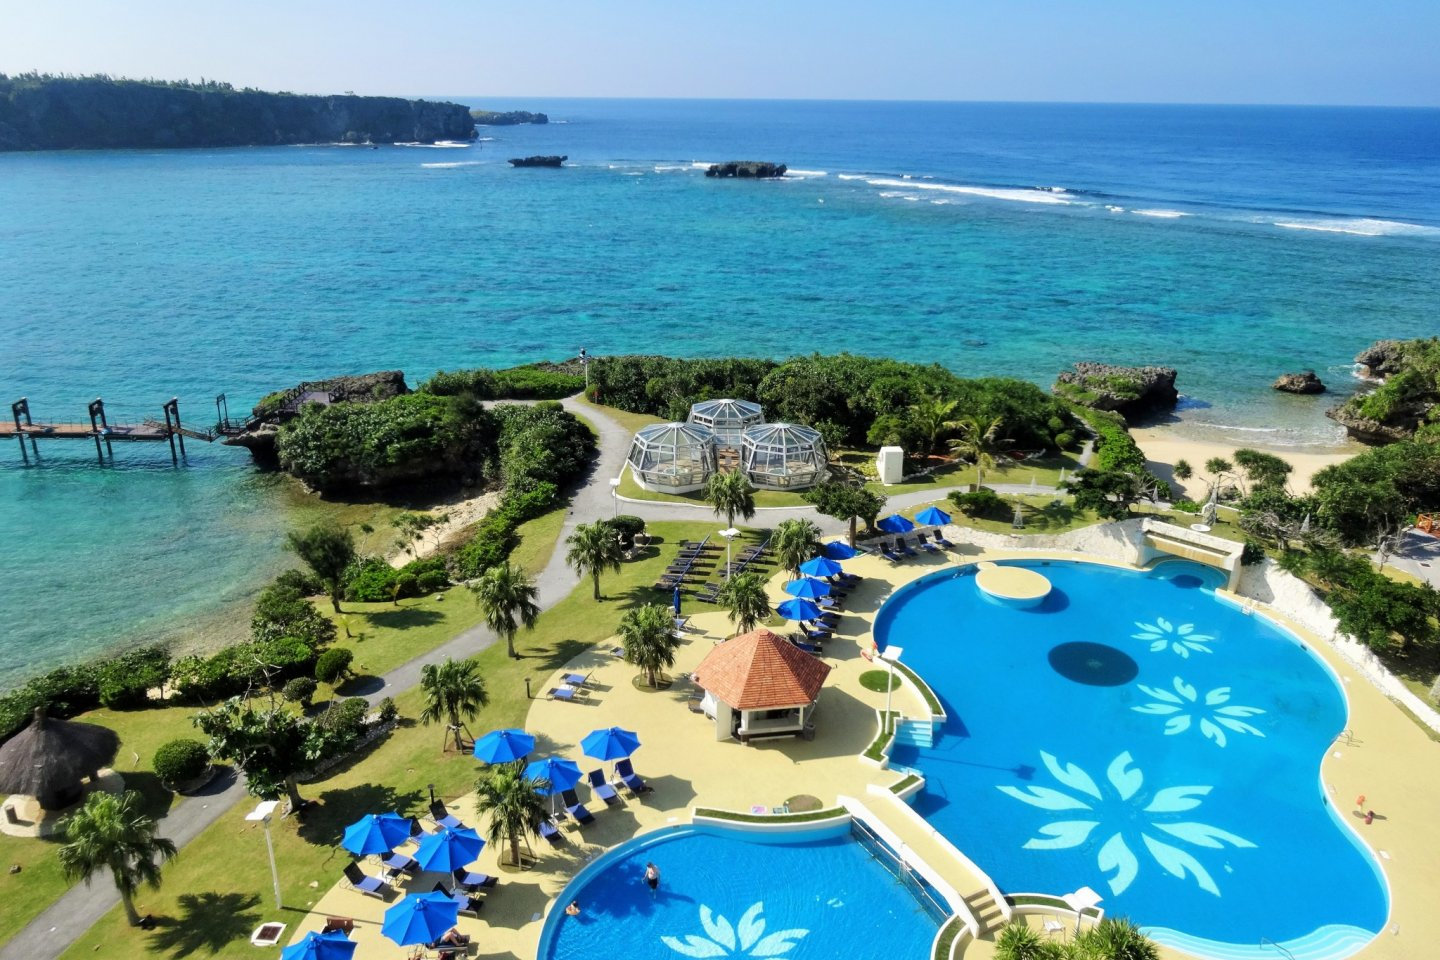 Guests can swim in both the outdoor pool or the beach